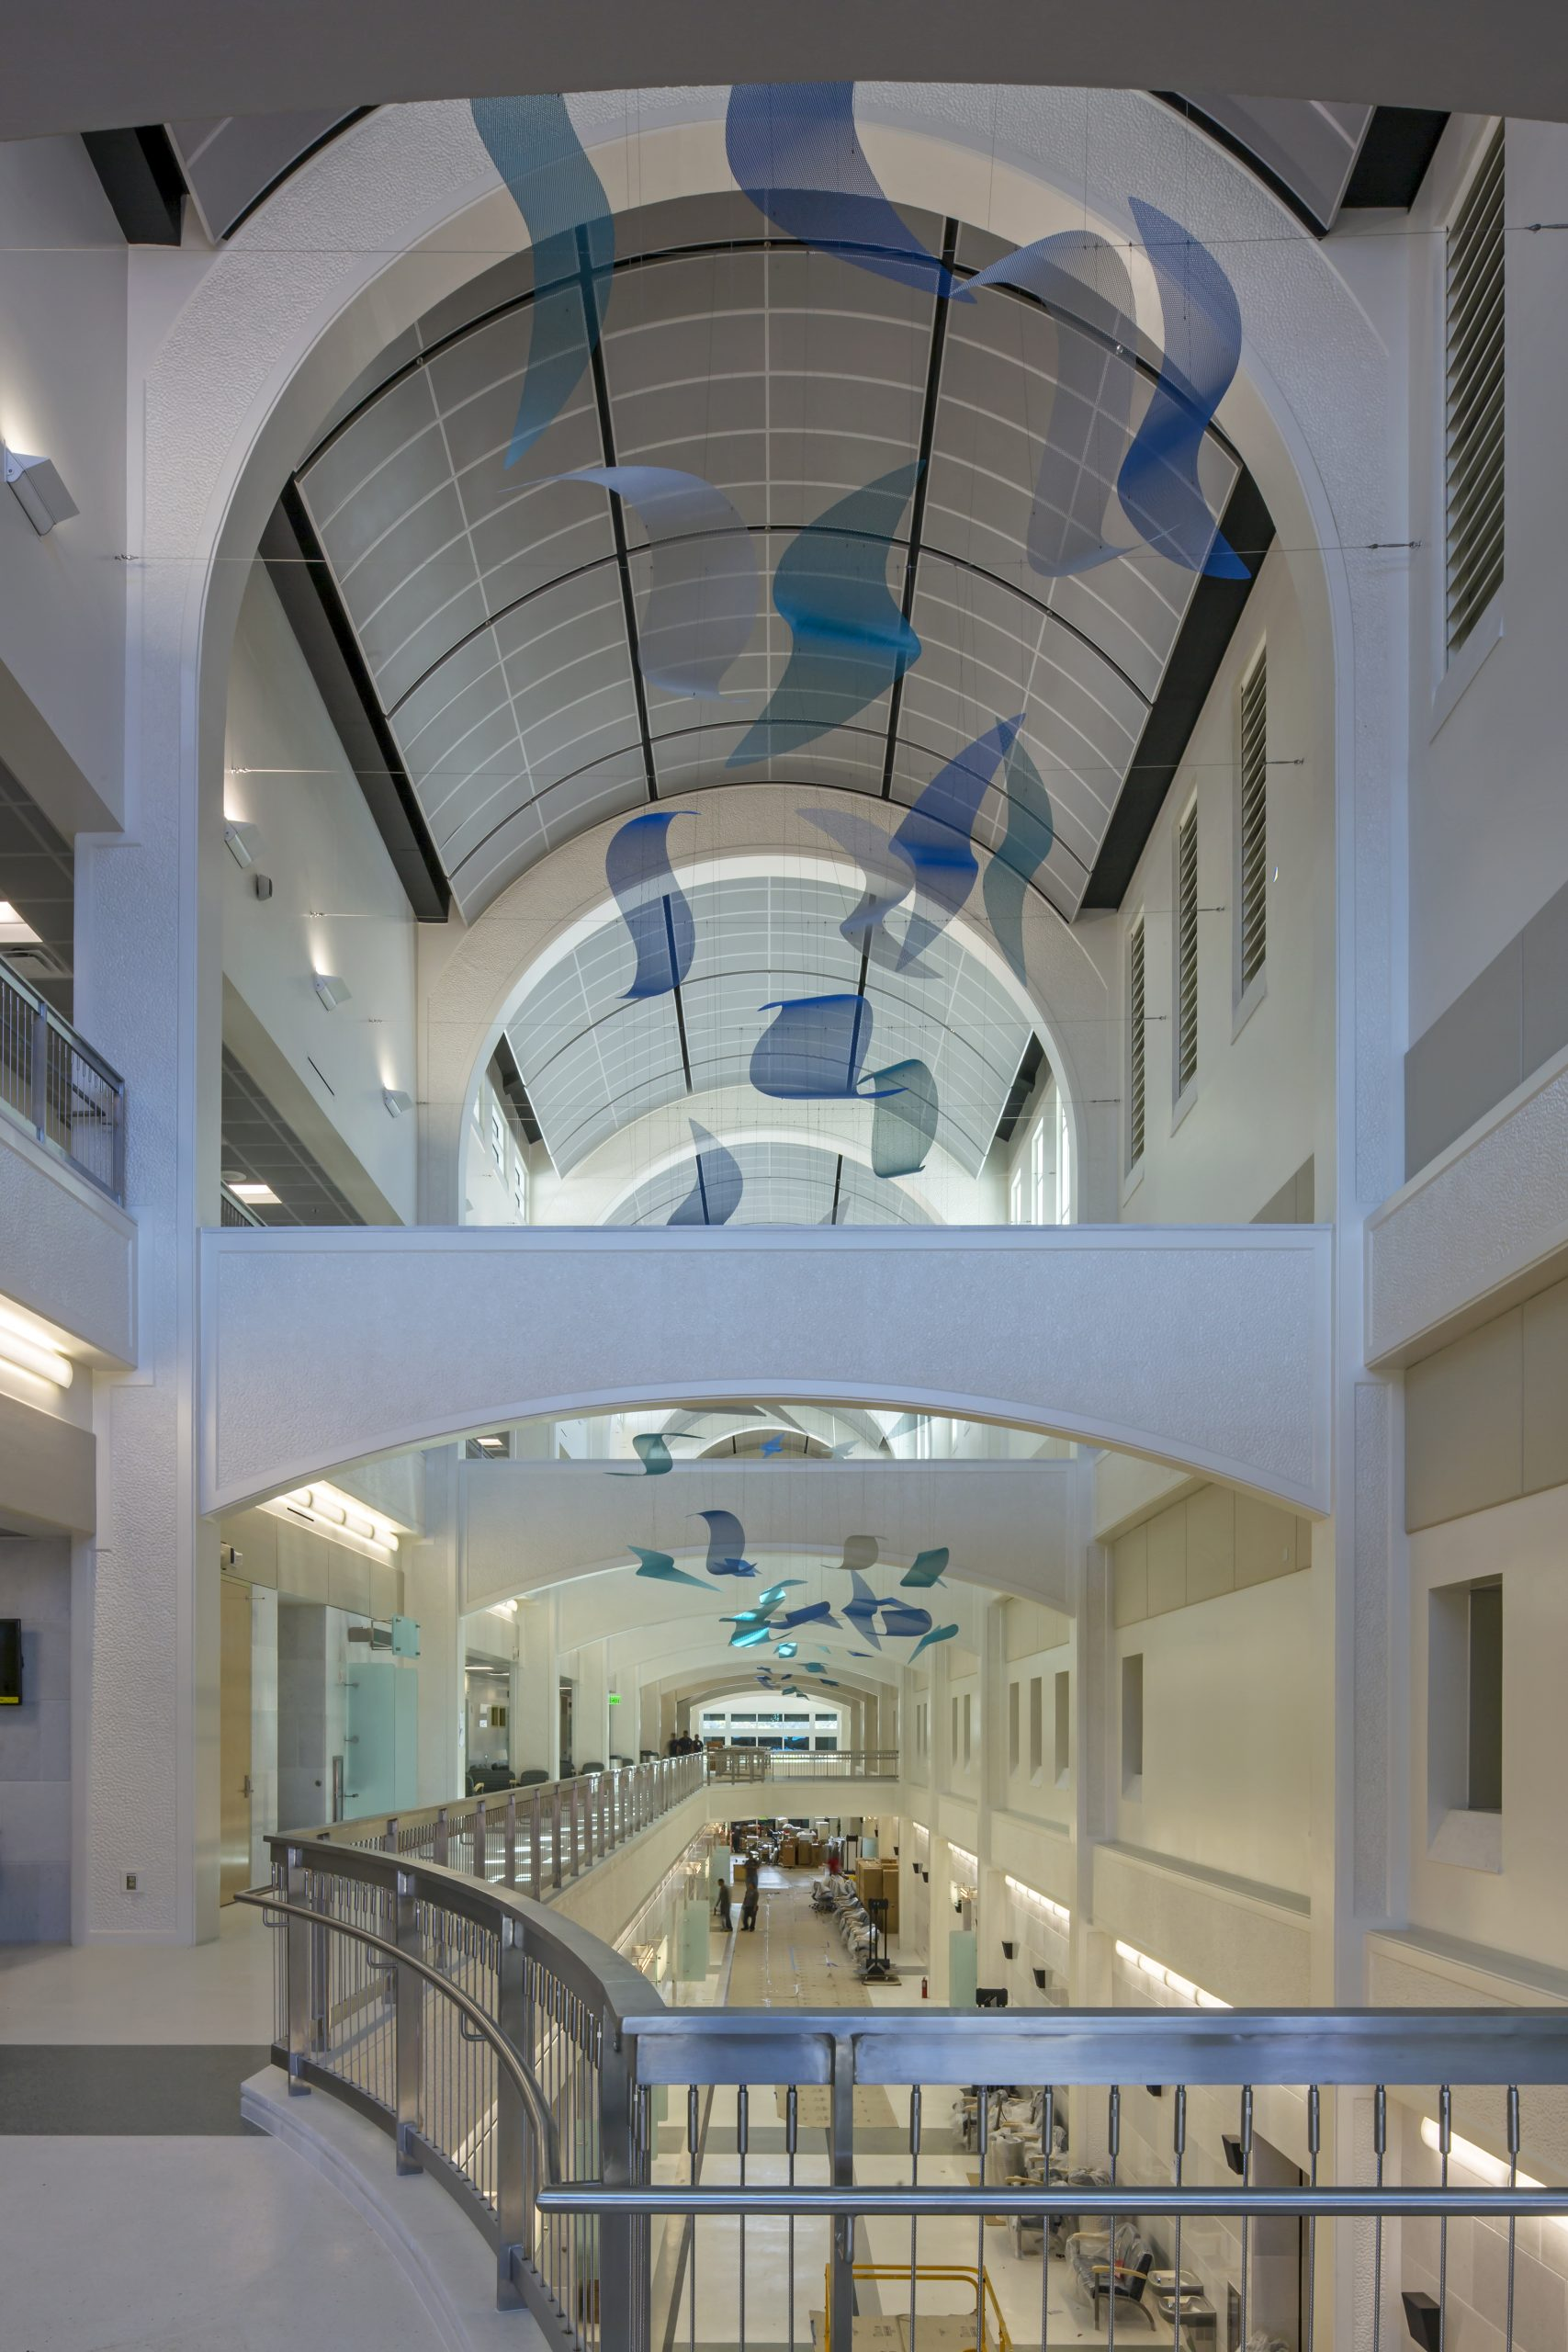 Sea Change sculpture by Talley Fisher hangs high in the atrium in US Naval Hospital, Guam